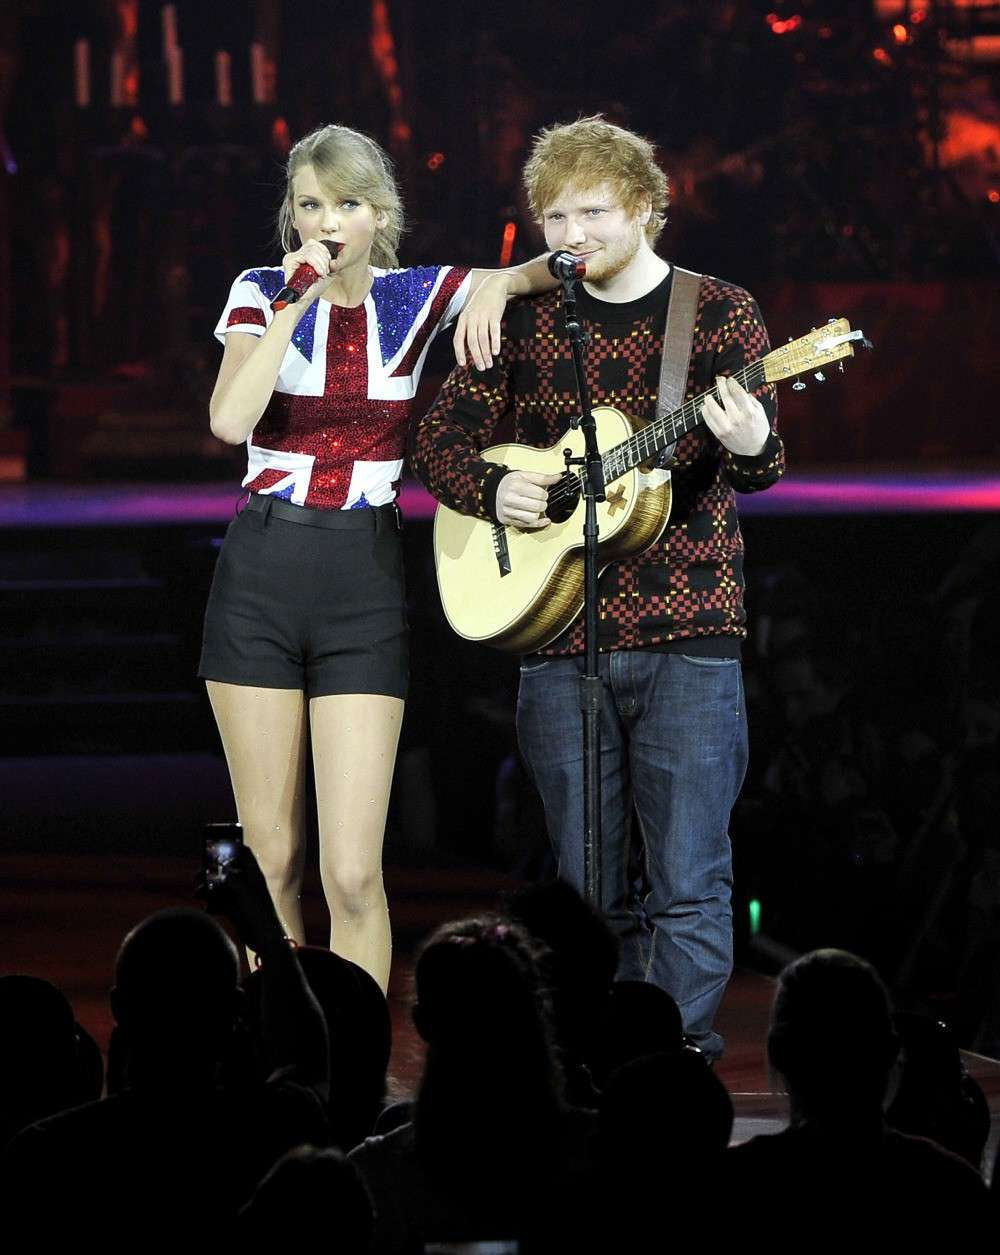 Ed Sheeran sul palco con Taylor Swift